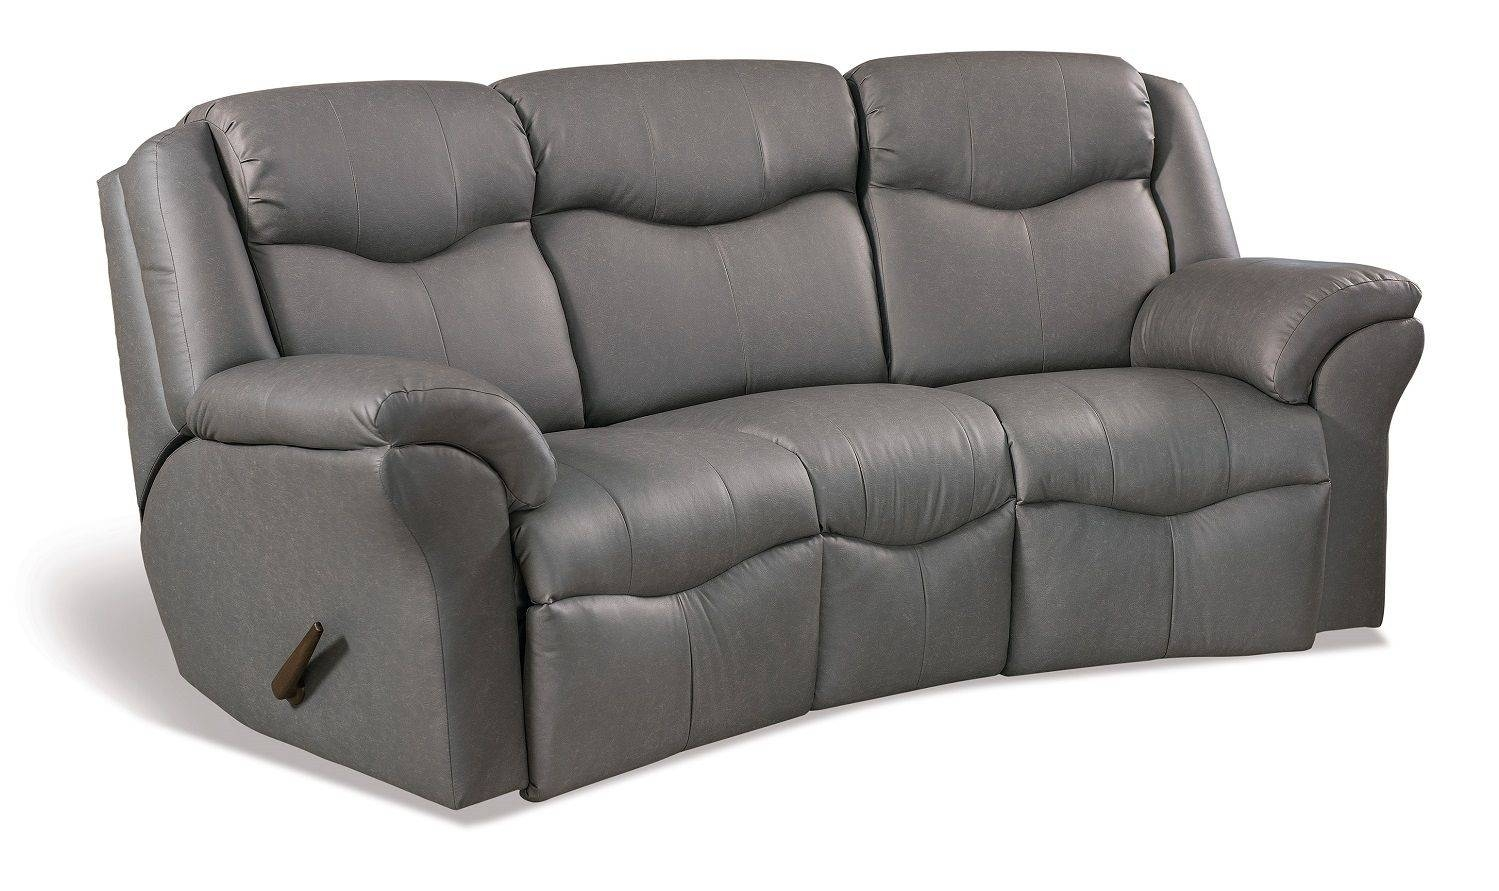 Kenwood Curved Reclining Sofa - Countryside Amish Furniture throughout Curved Recliner Sofa (Image 18 of 30)